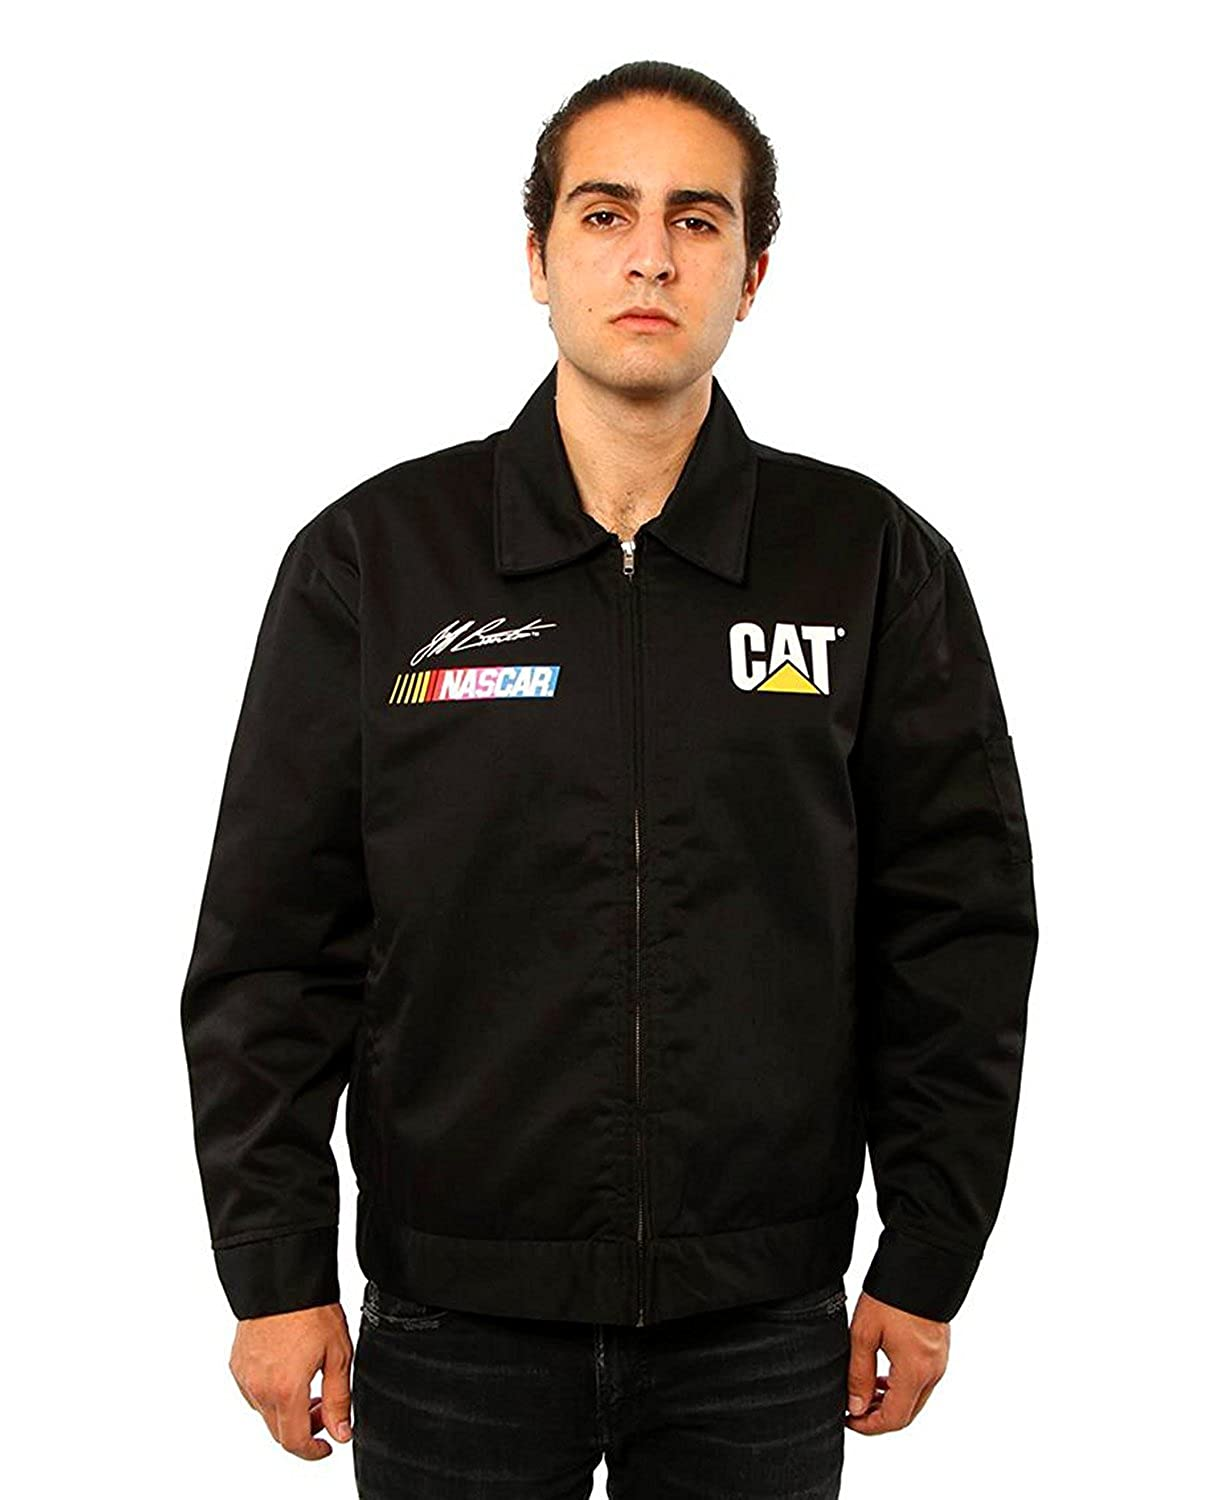 JH Design Men's NASCAR Jeff Burton Caterpillar Racing Mechanics Jacket JBO313MC11